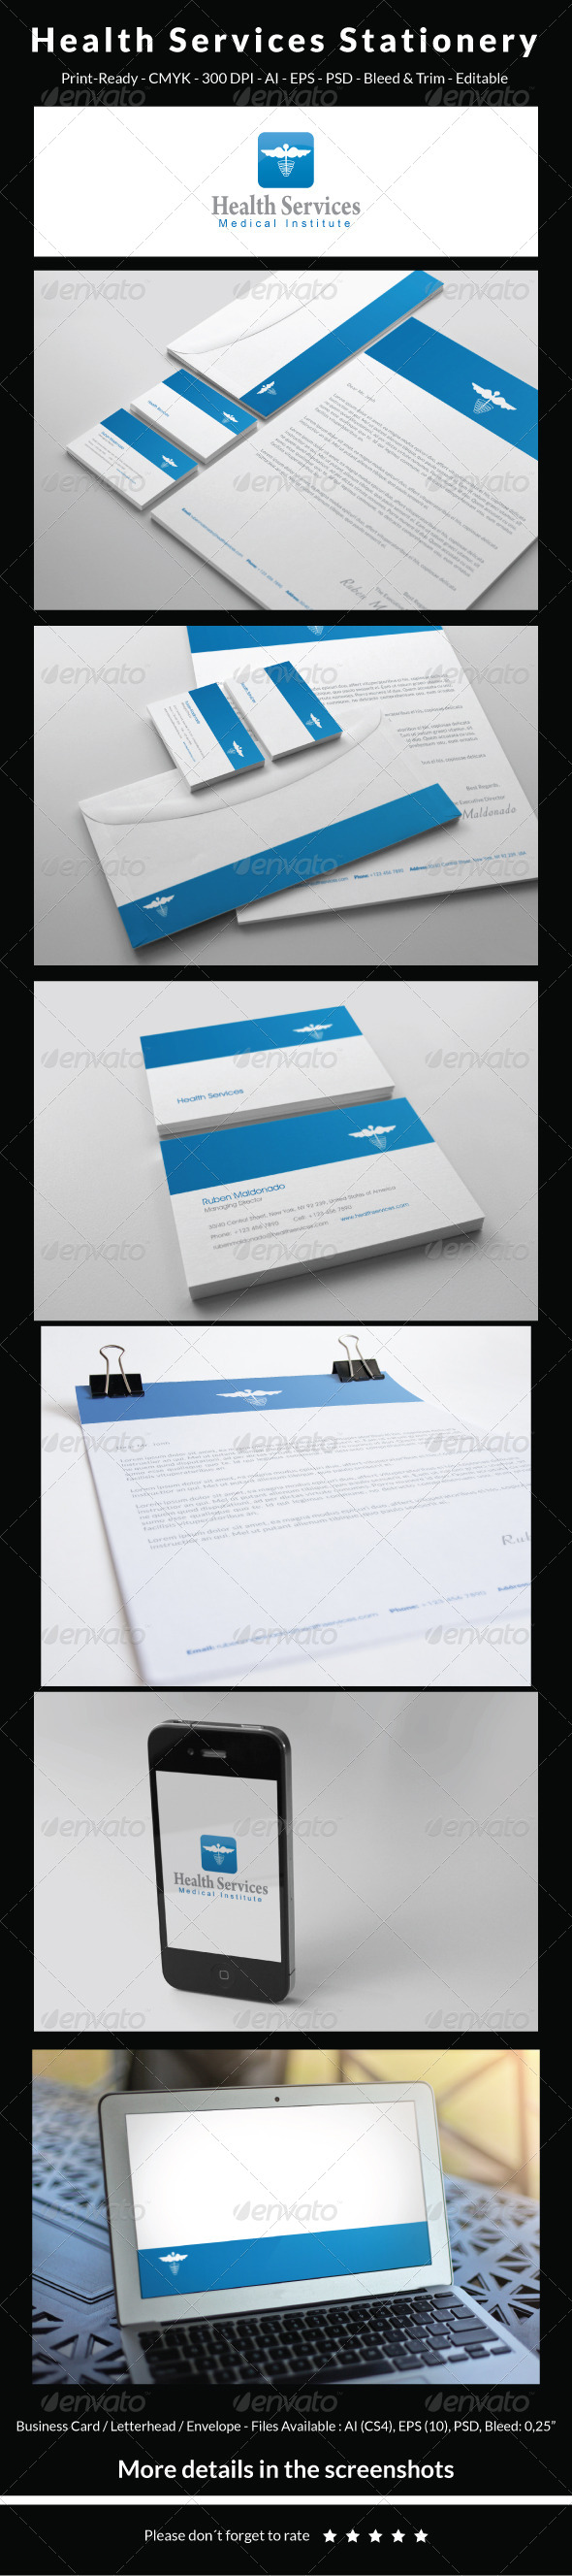 GraphicRiver Health Services Stationery 5694063